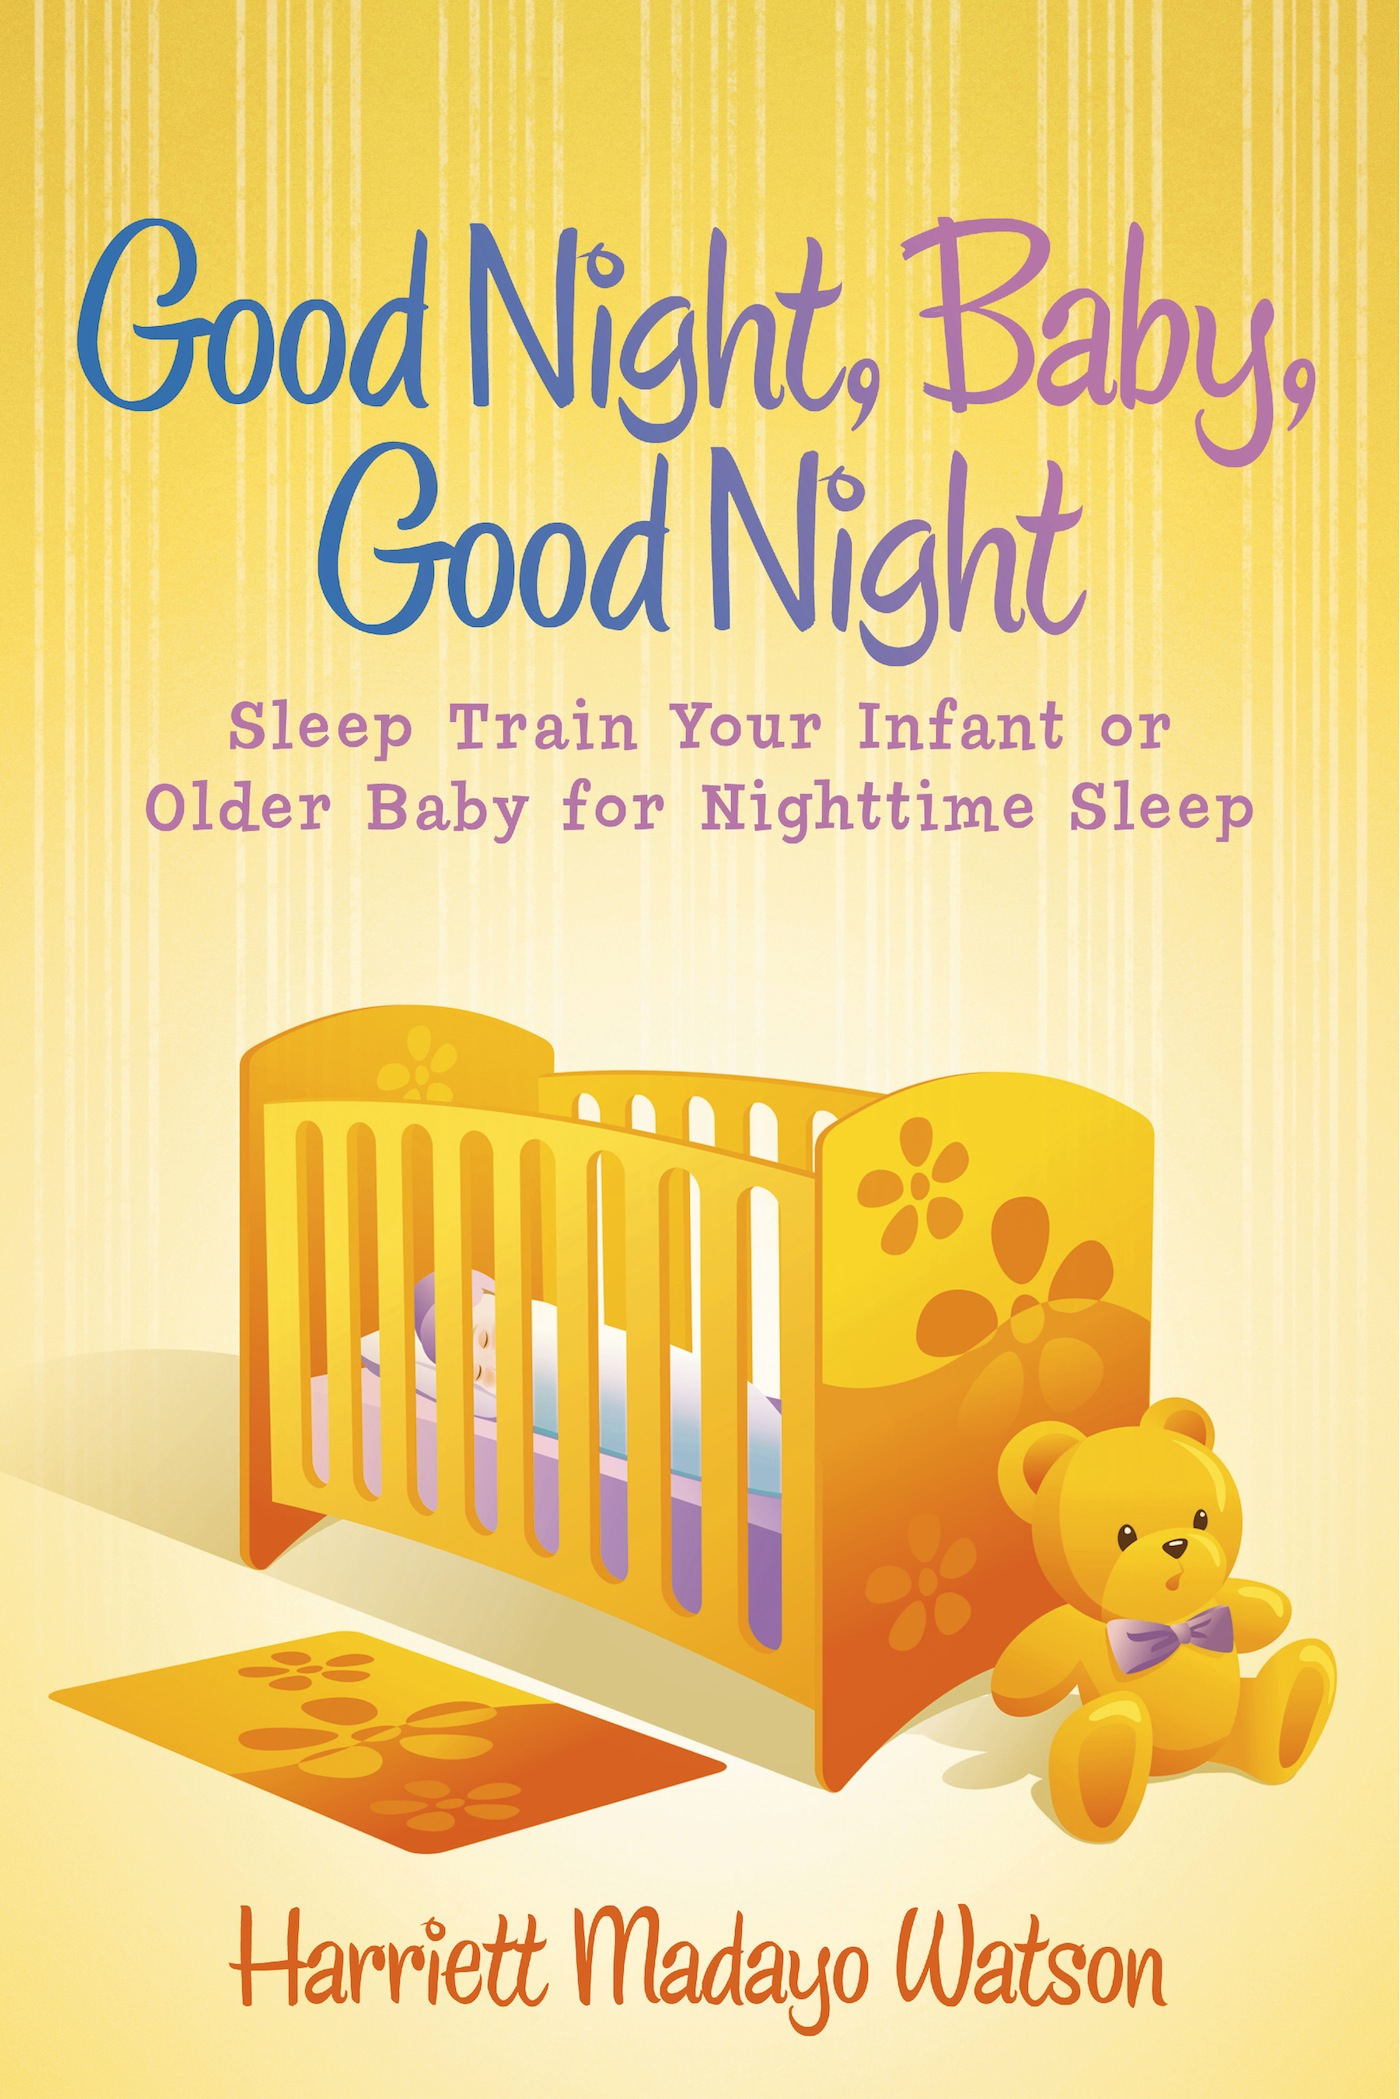 Good Night, Baby, Good Night: Sleep Train Your Infant or Older Baby for Nighttime Sleep By: Harriett Madayo Watson